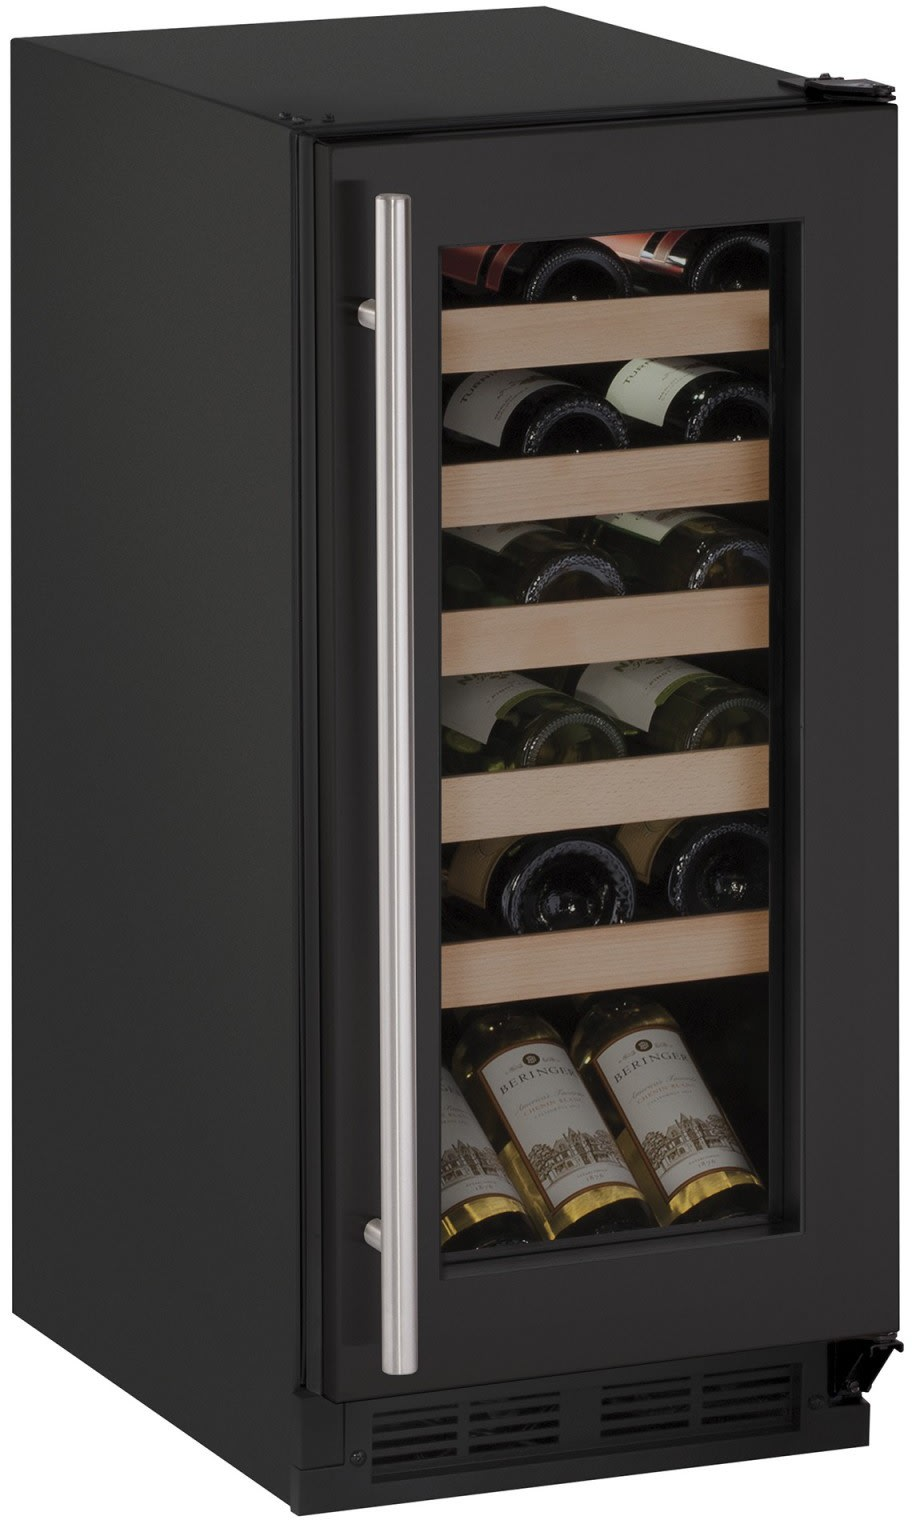 U Line U1215wcb00b 15 Inch Undercounter Wine Storage With